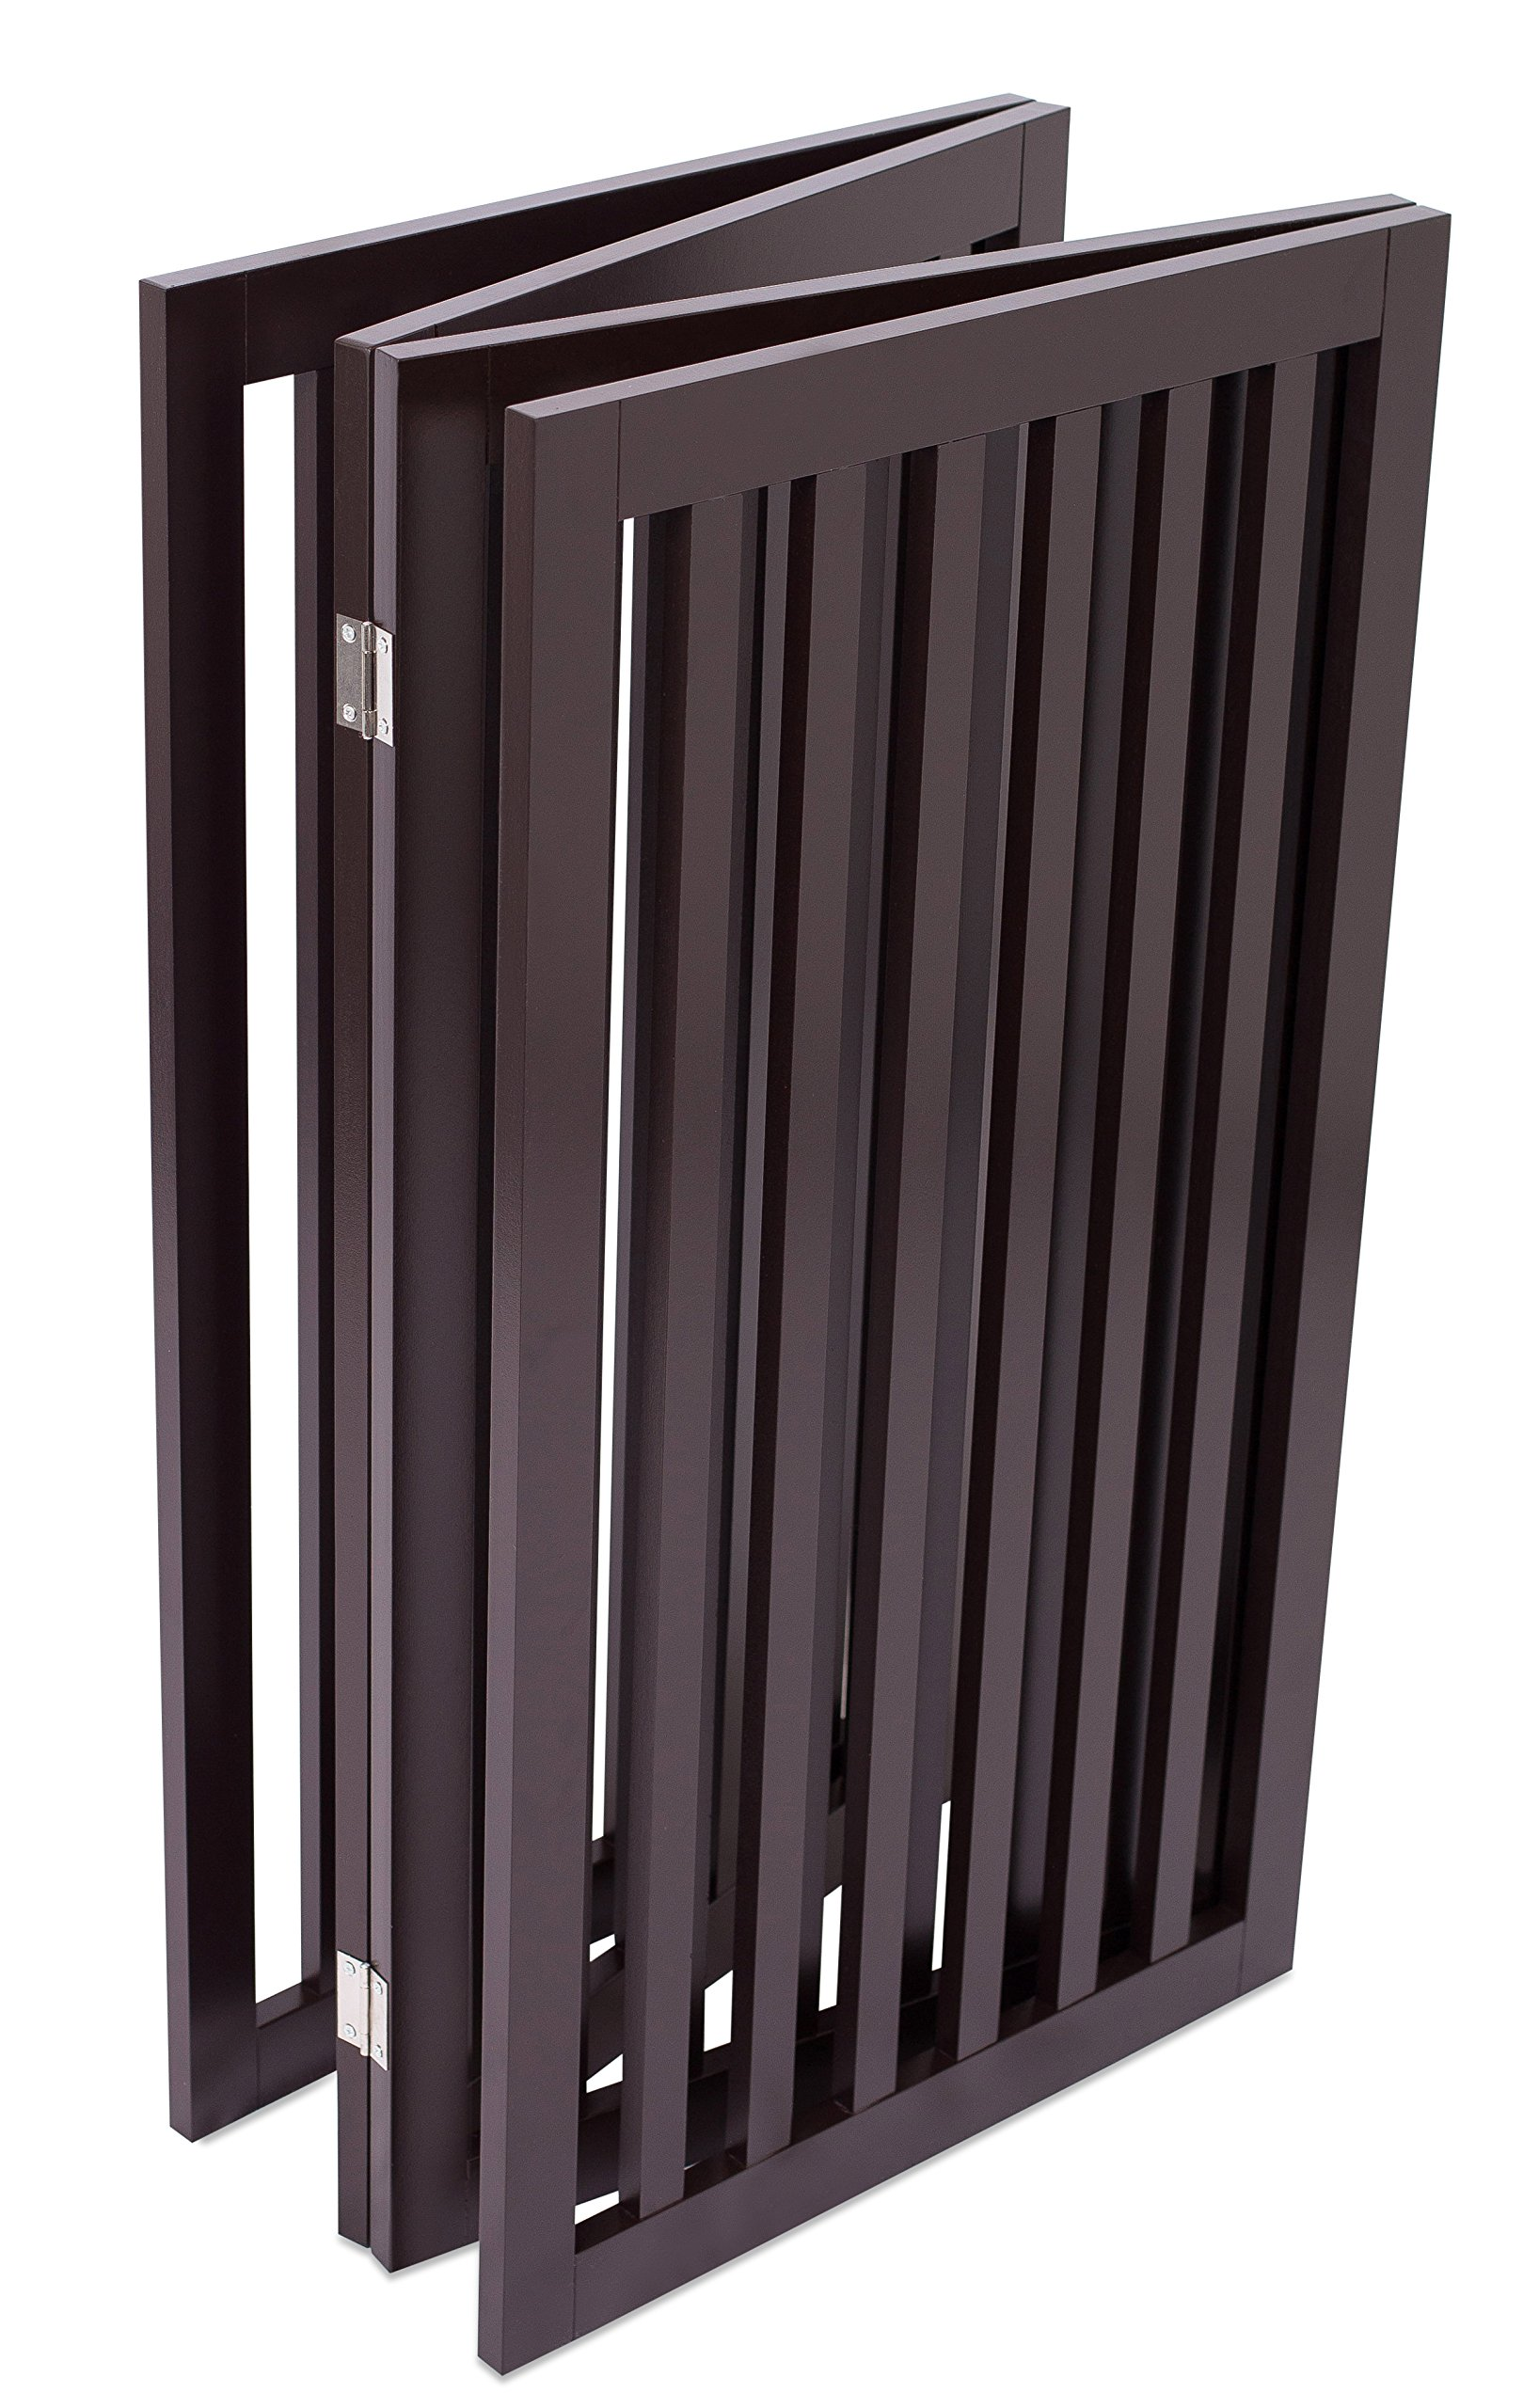 Internet's Best Traditional Pet Gate | 4 Panel | 36 Inch Tall Fence | Free Standing Folding Z Shape Indoor Doorway Hall Stairs Dog Puppy Gate | Fully Assembled | Espresso | Wooden by Internet's Best (Image #5)